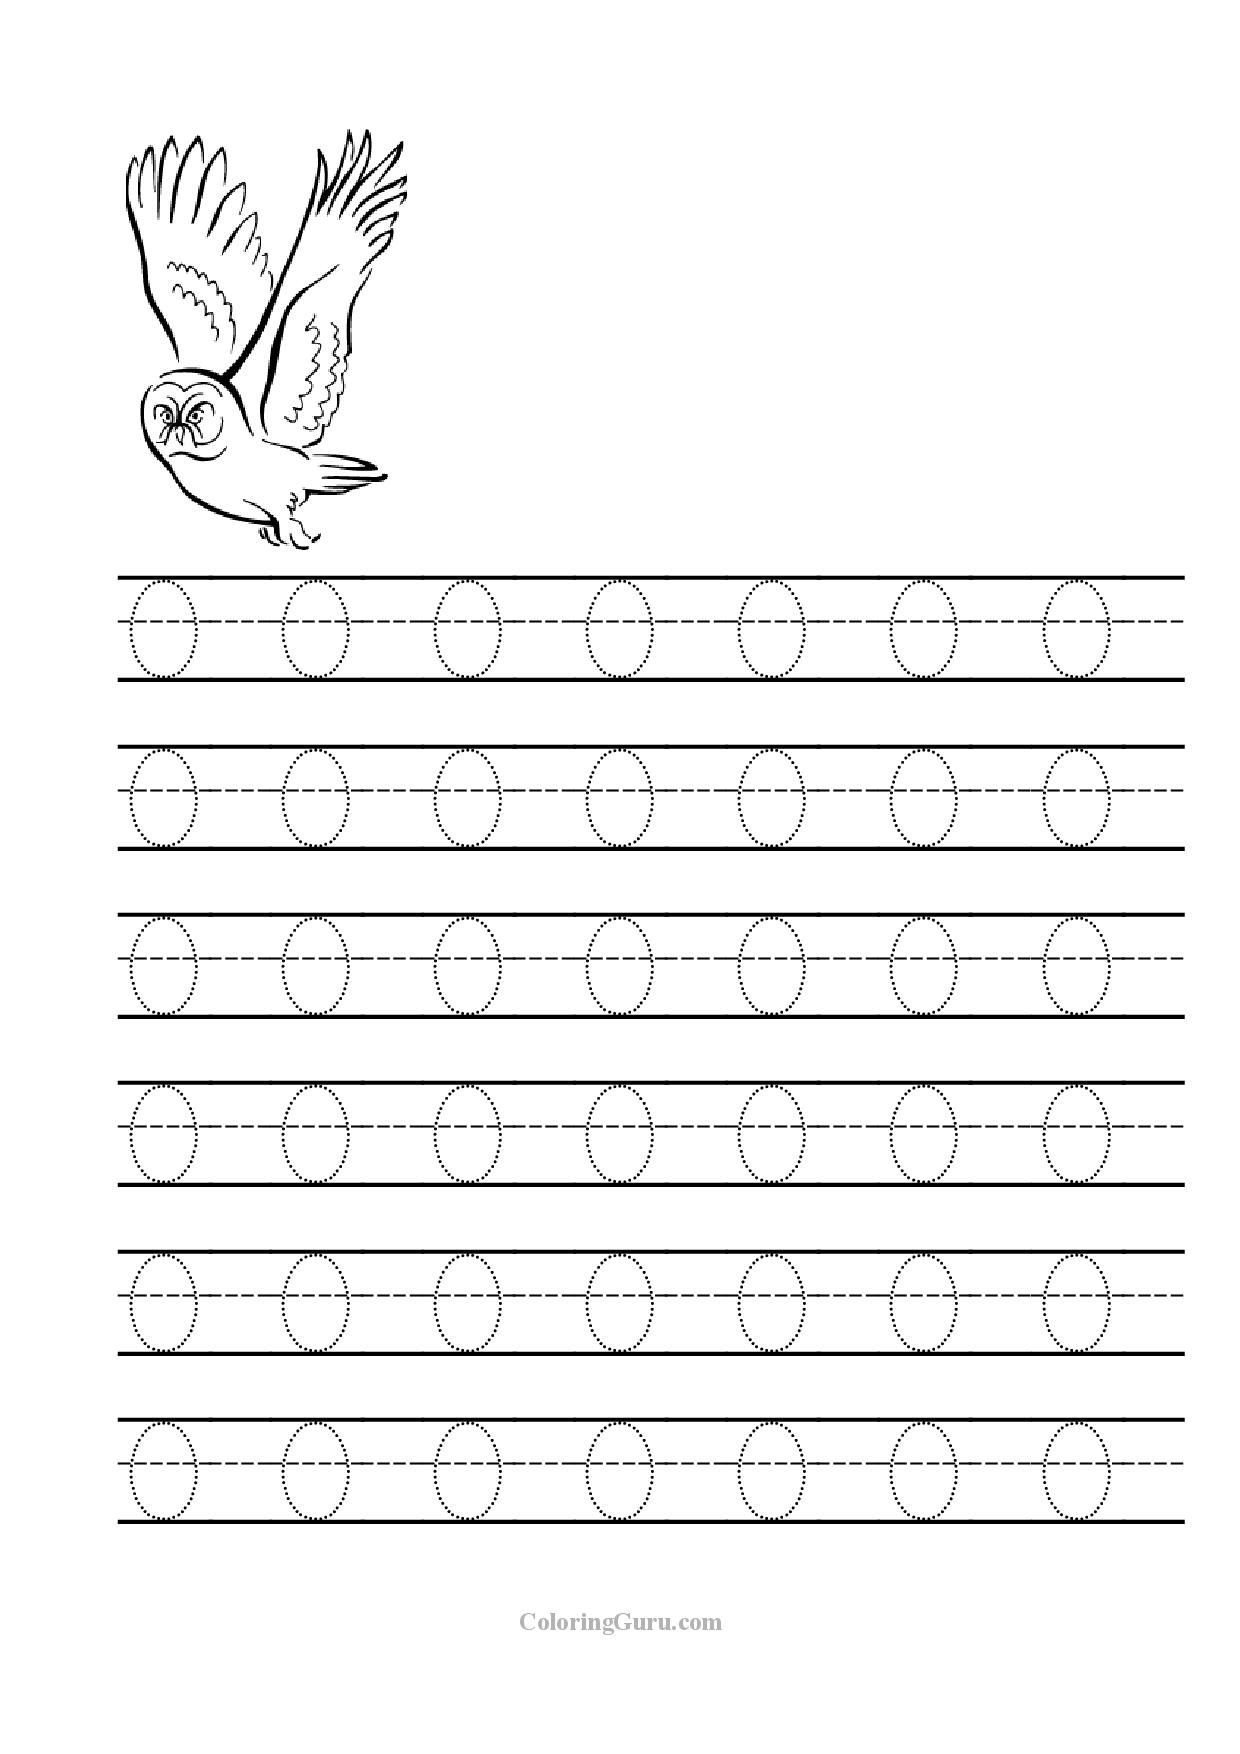 Letter O Worksheet for Kindergarten Free Printable Tracing Letter O Worksheets for Preschool